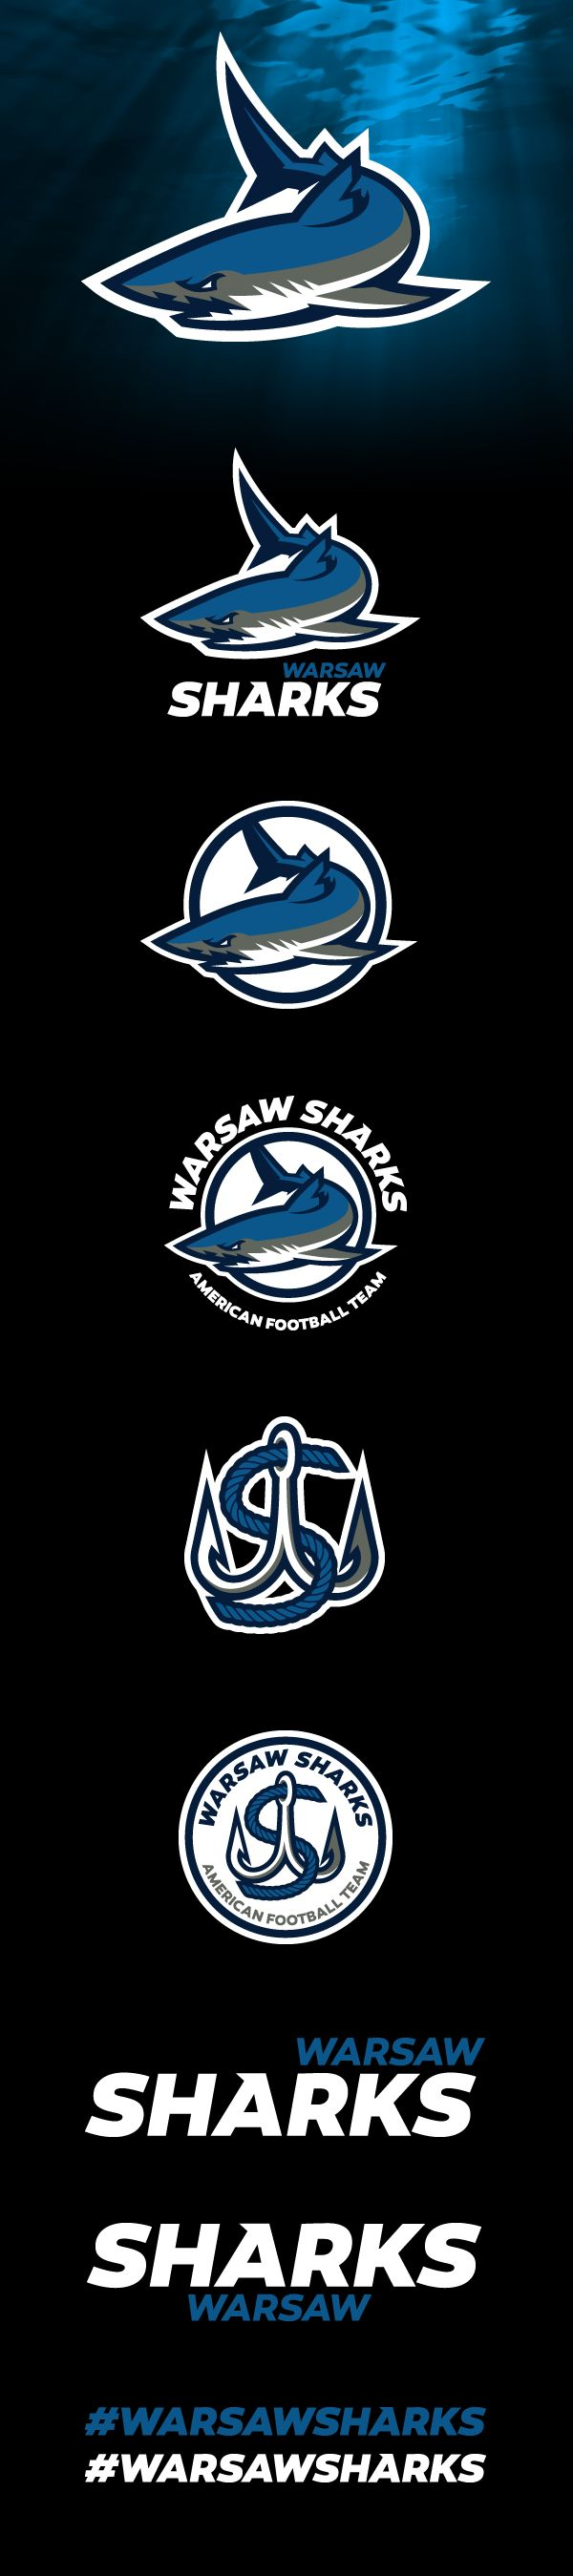 Warsaw Sharks - Sports Branding